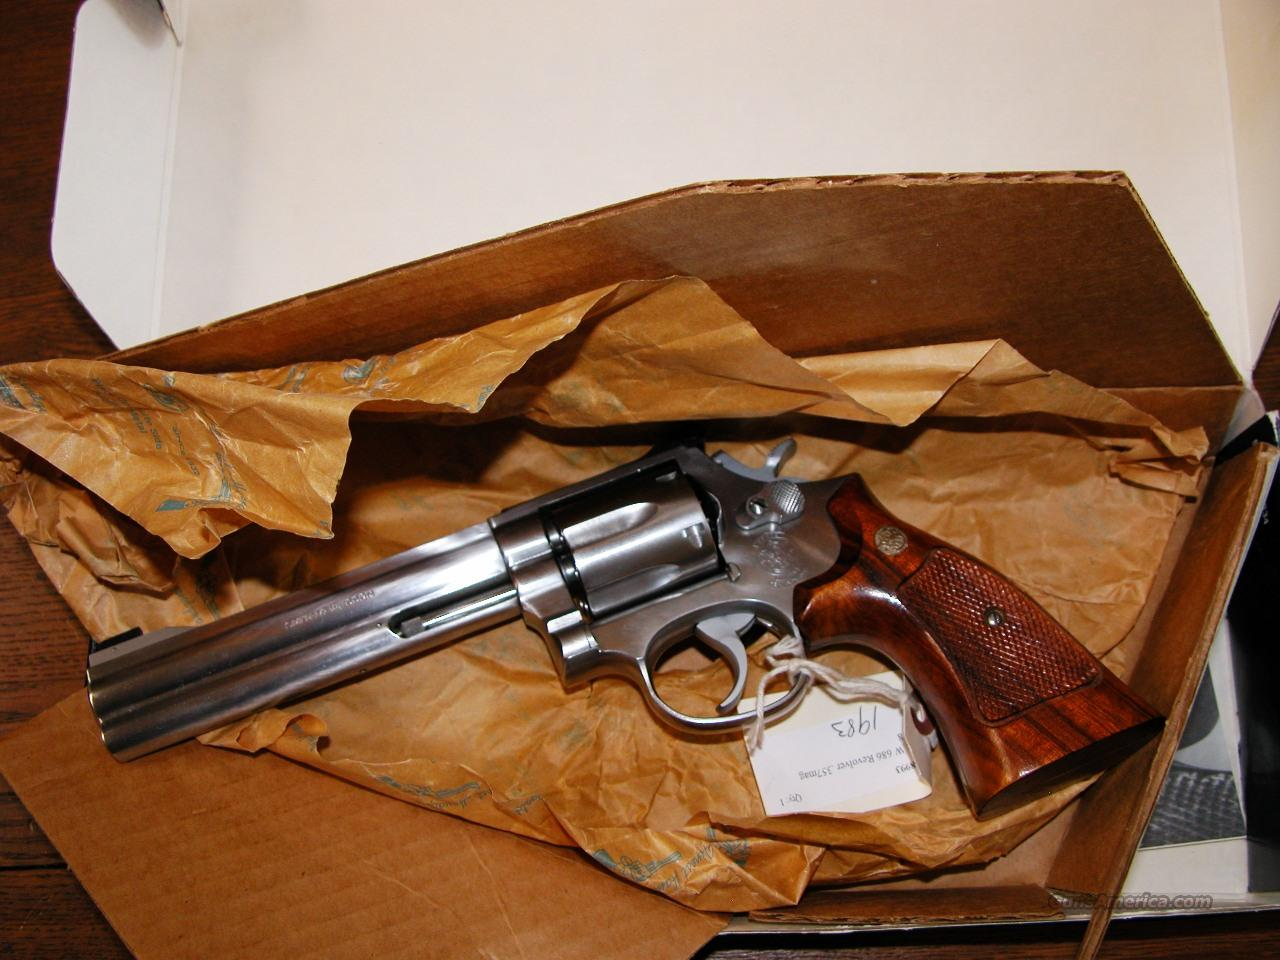 S&W 686 1983  357 MAG 6 ROUND 1983 MANUFACTURE NIB.  Guns > Pistols > Smith & Wesson Revolvers > Full Frame Revolver